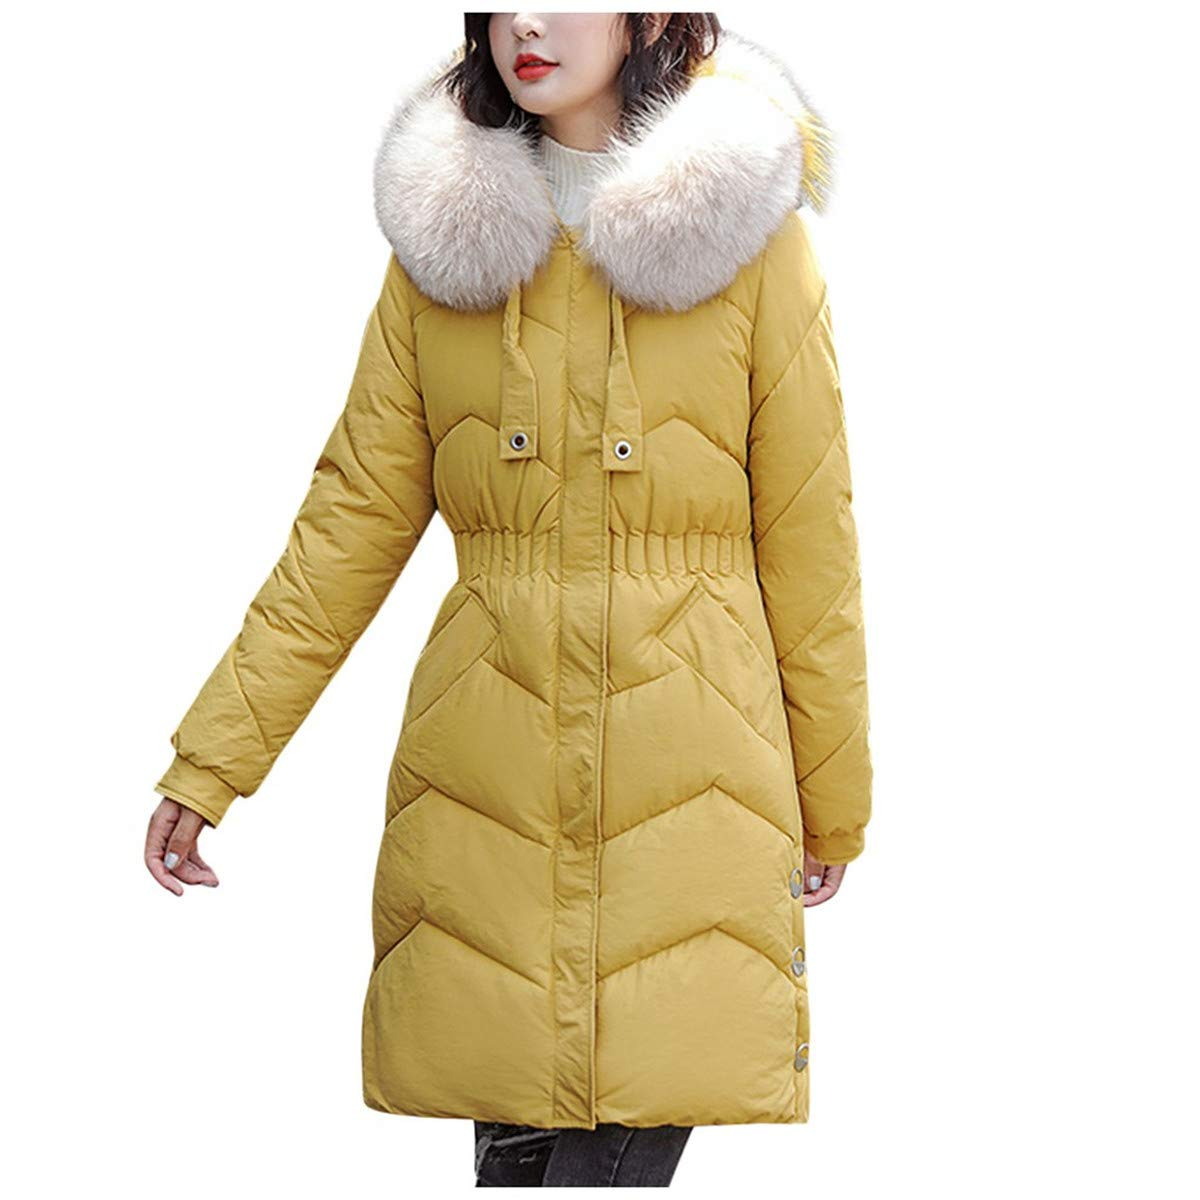 Thenxin Women's Winter Jacket Mid Lenght Warm Parka Puffer Coats with Faux Fur Hoodie(Yellow,XXXL) by Thenxin